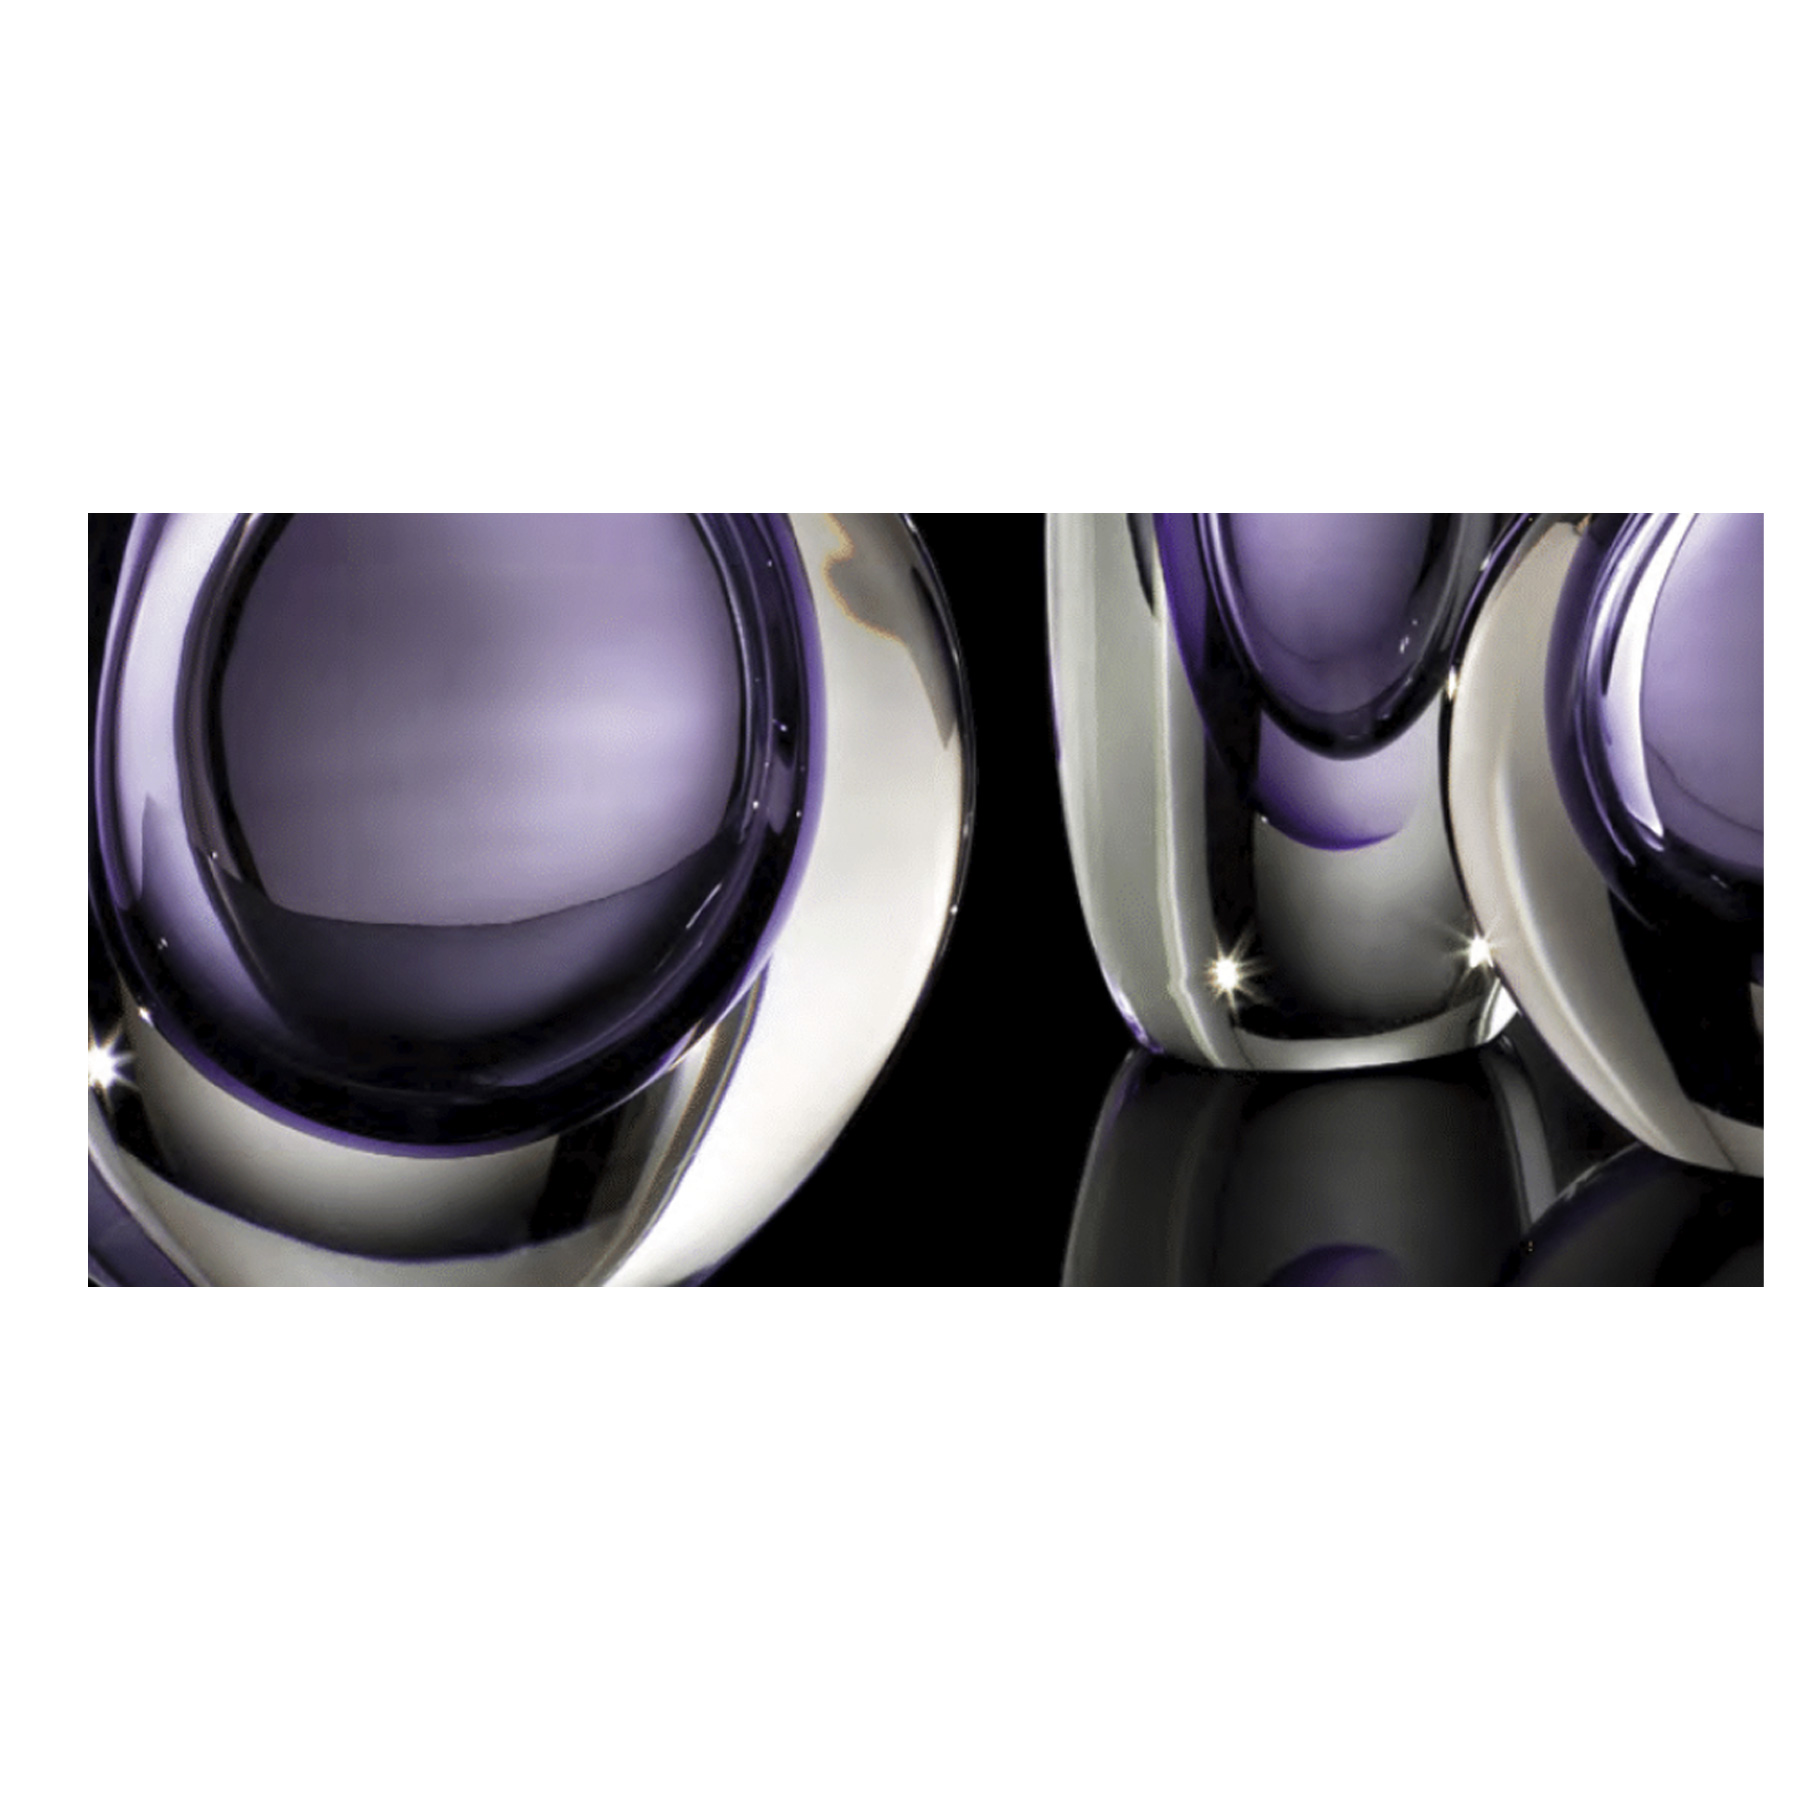 """Mila Tall Vase - <p>From the Mila Collection, this striking mouth-blown vase features an elegant, elongated shape will infuse bold energy into any living room or entryway decor. Made of Murano glass through the 'Submerged' glass technique, which is used to create several layers of glass with contrasting colours inside a single object, giving the illusion of """"submerged"""" colours that lay on top of each other without mixing. This is done by joining different layers of glass through heat and repeatedly submerging them in pots of molten coloured glass. The bulb-like shape of the vase tapering to a dainty mouth large enough to hold a single flower adds a whimsical touch that completes the piece. The vases are distinguished for their distinct colour combination, the vibrant coloured interior encased in a brilliant clear glass exterior. Also available in different colours, from green/amber and aquamarine to medium brown and black.</p>    Matter of Stuff"""